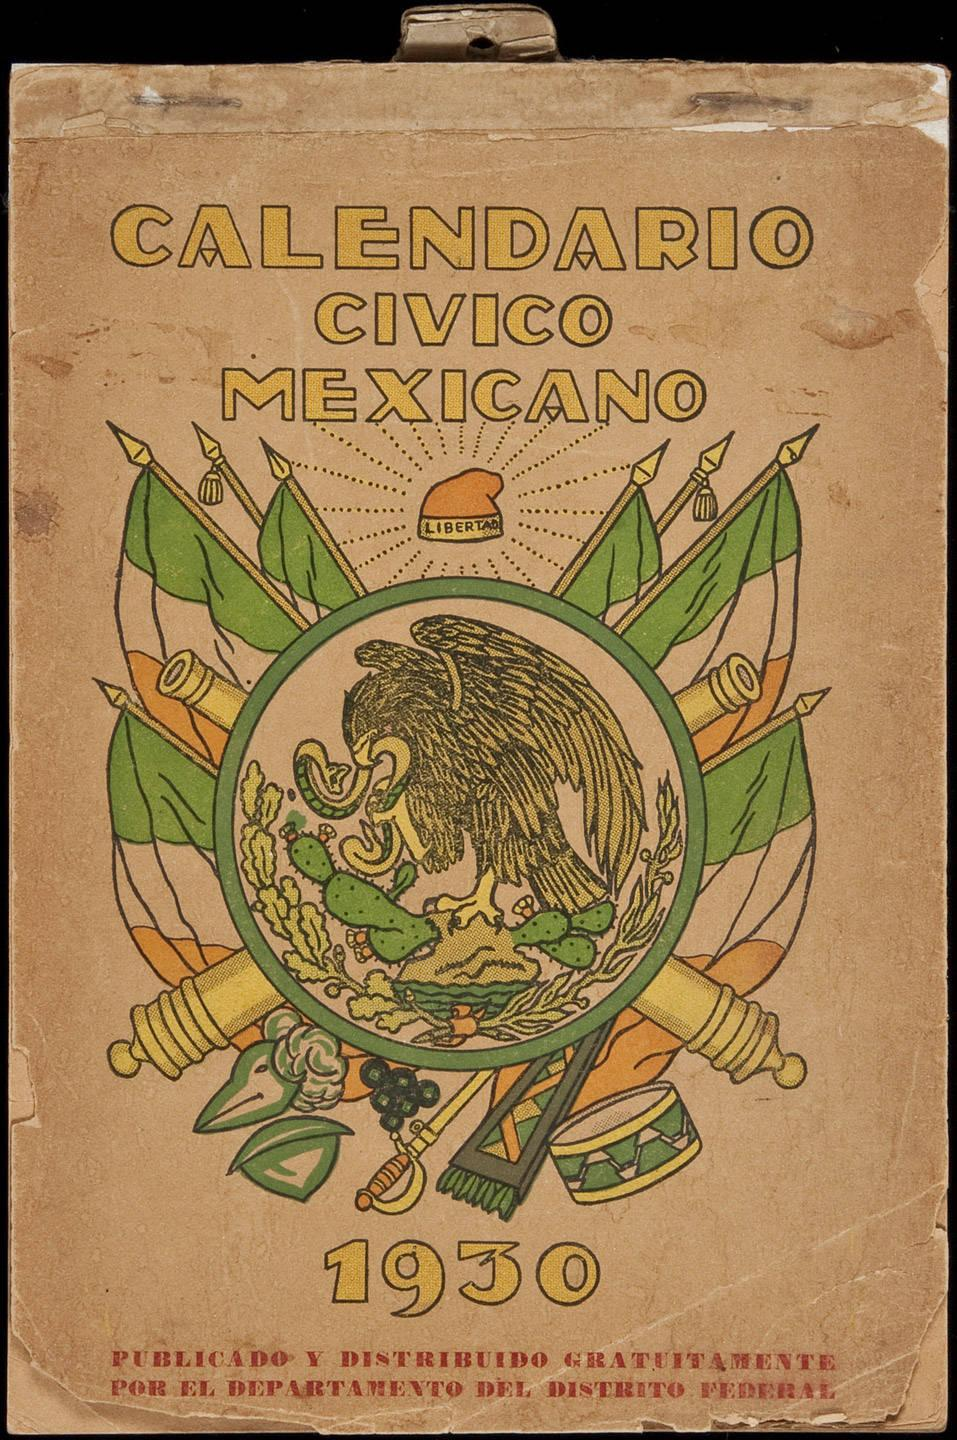 Calendario 1930.Calendario Civico Mexicano 1930 Price Estimate 300 500